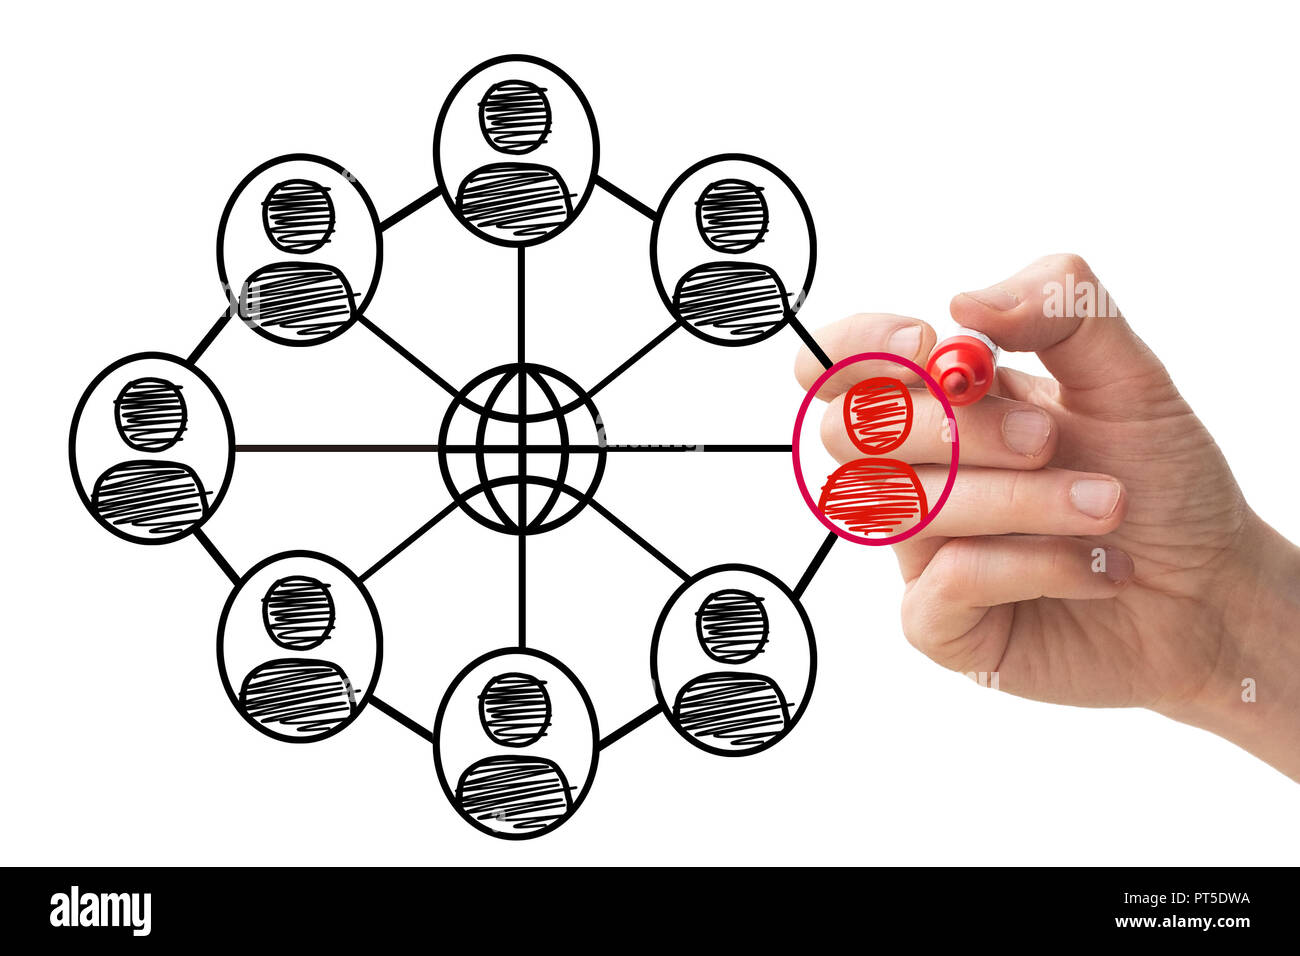 Social Network Concept on Whiteboard - Stock Image